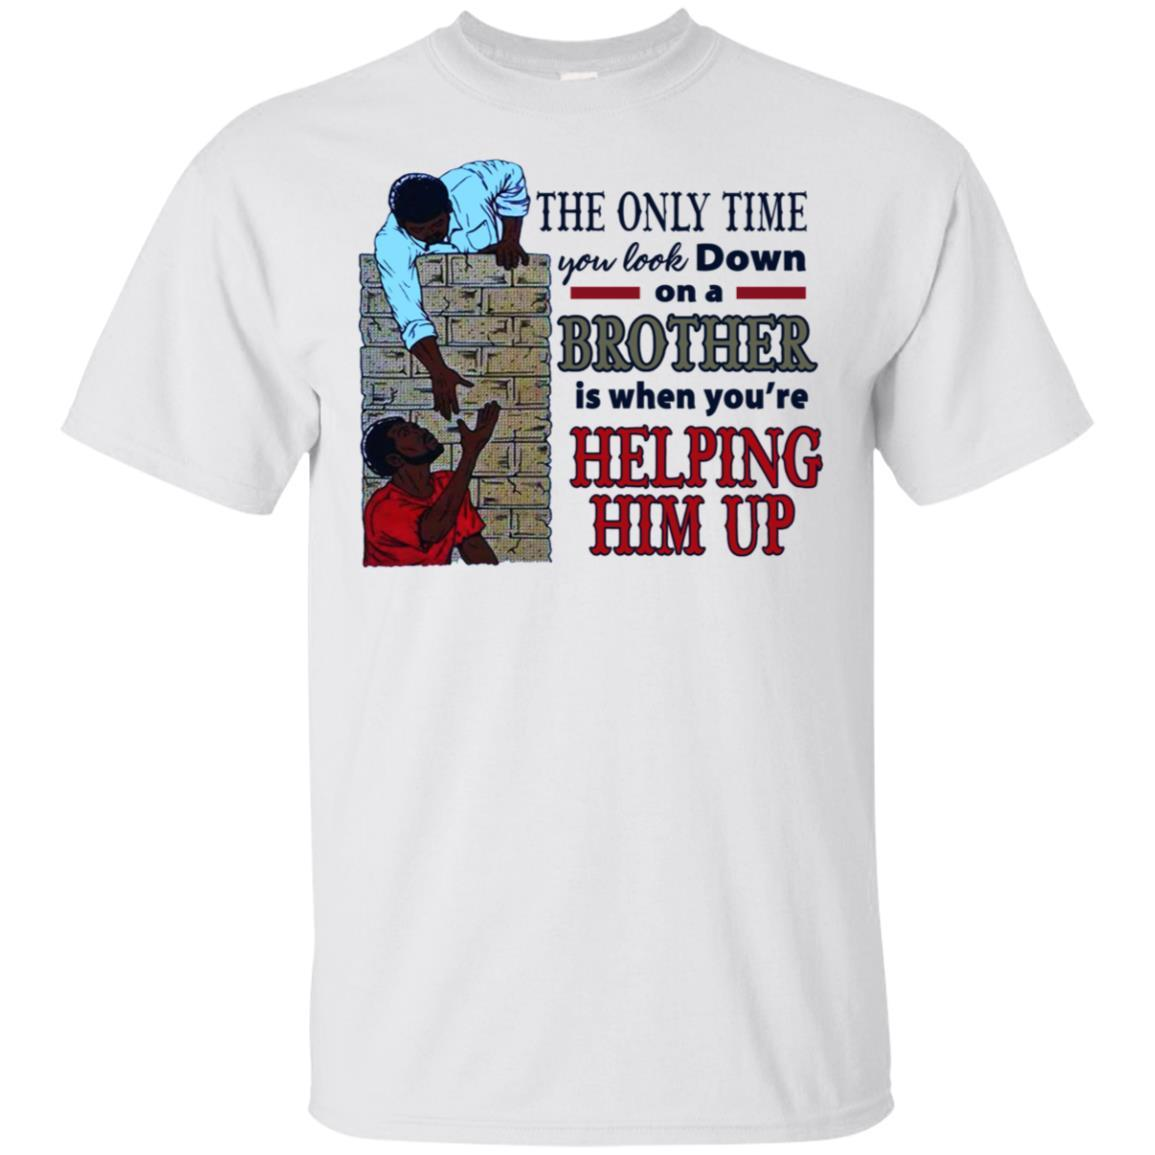 The Only Time You Look Down On A Brother Is When You're Helping Him Up shirt